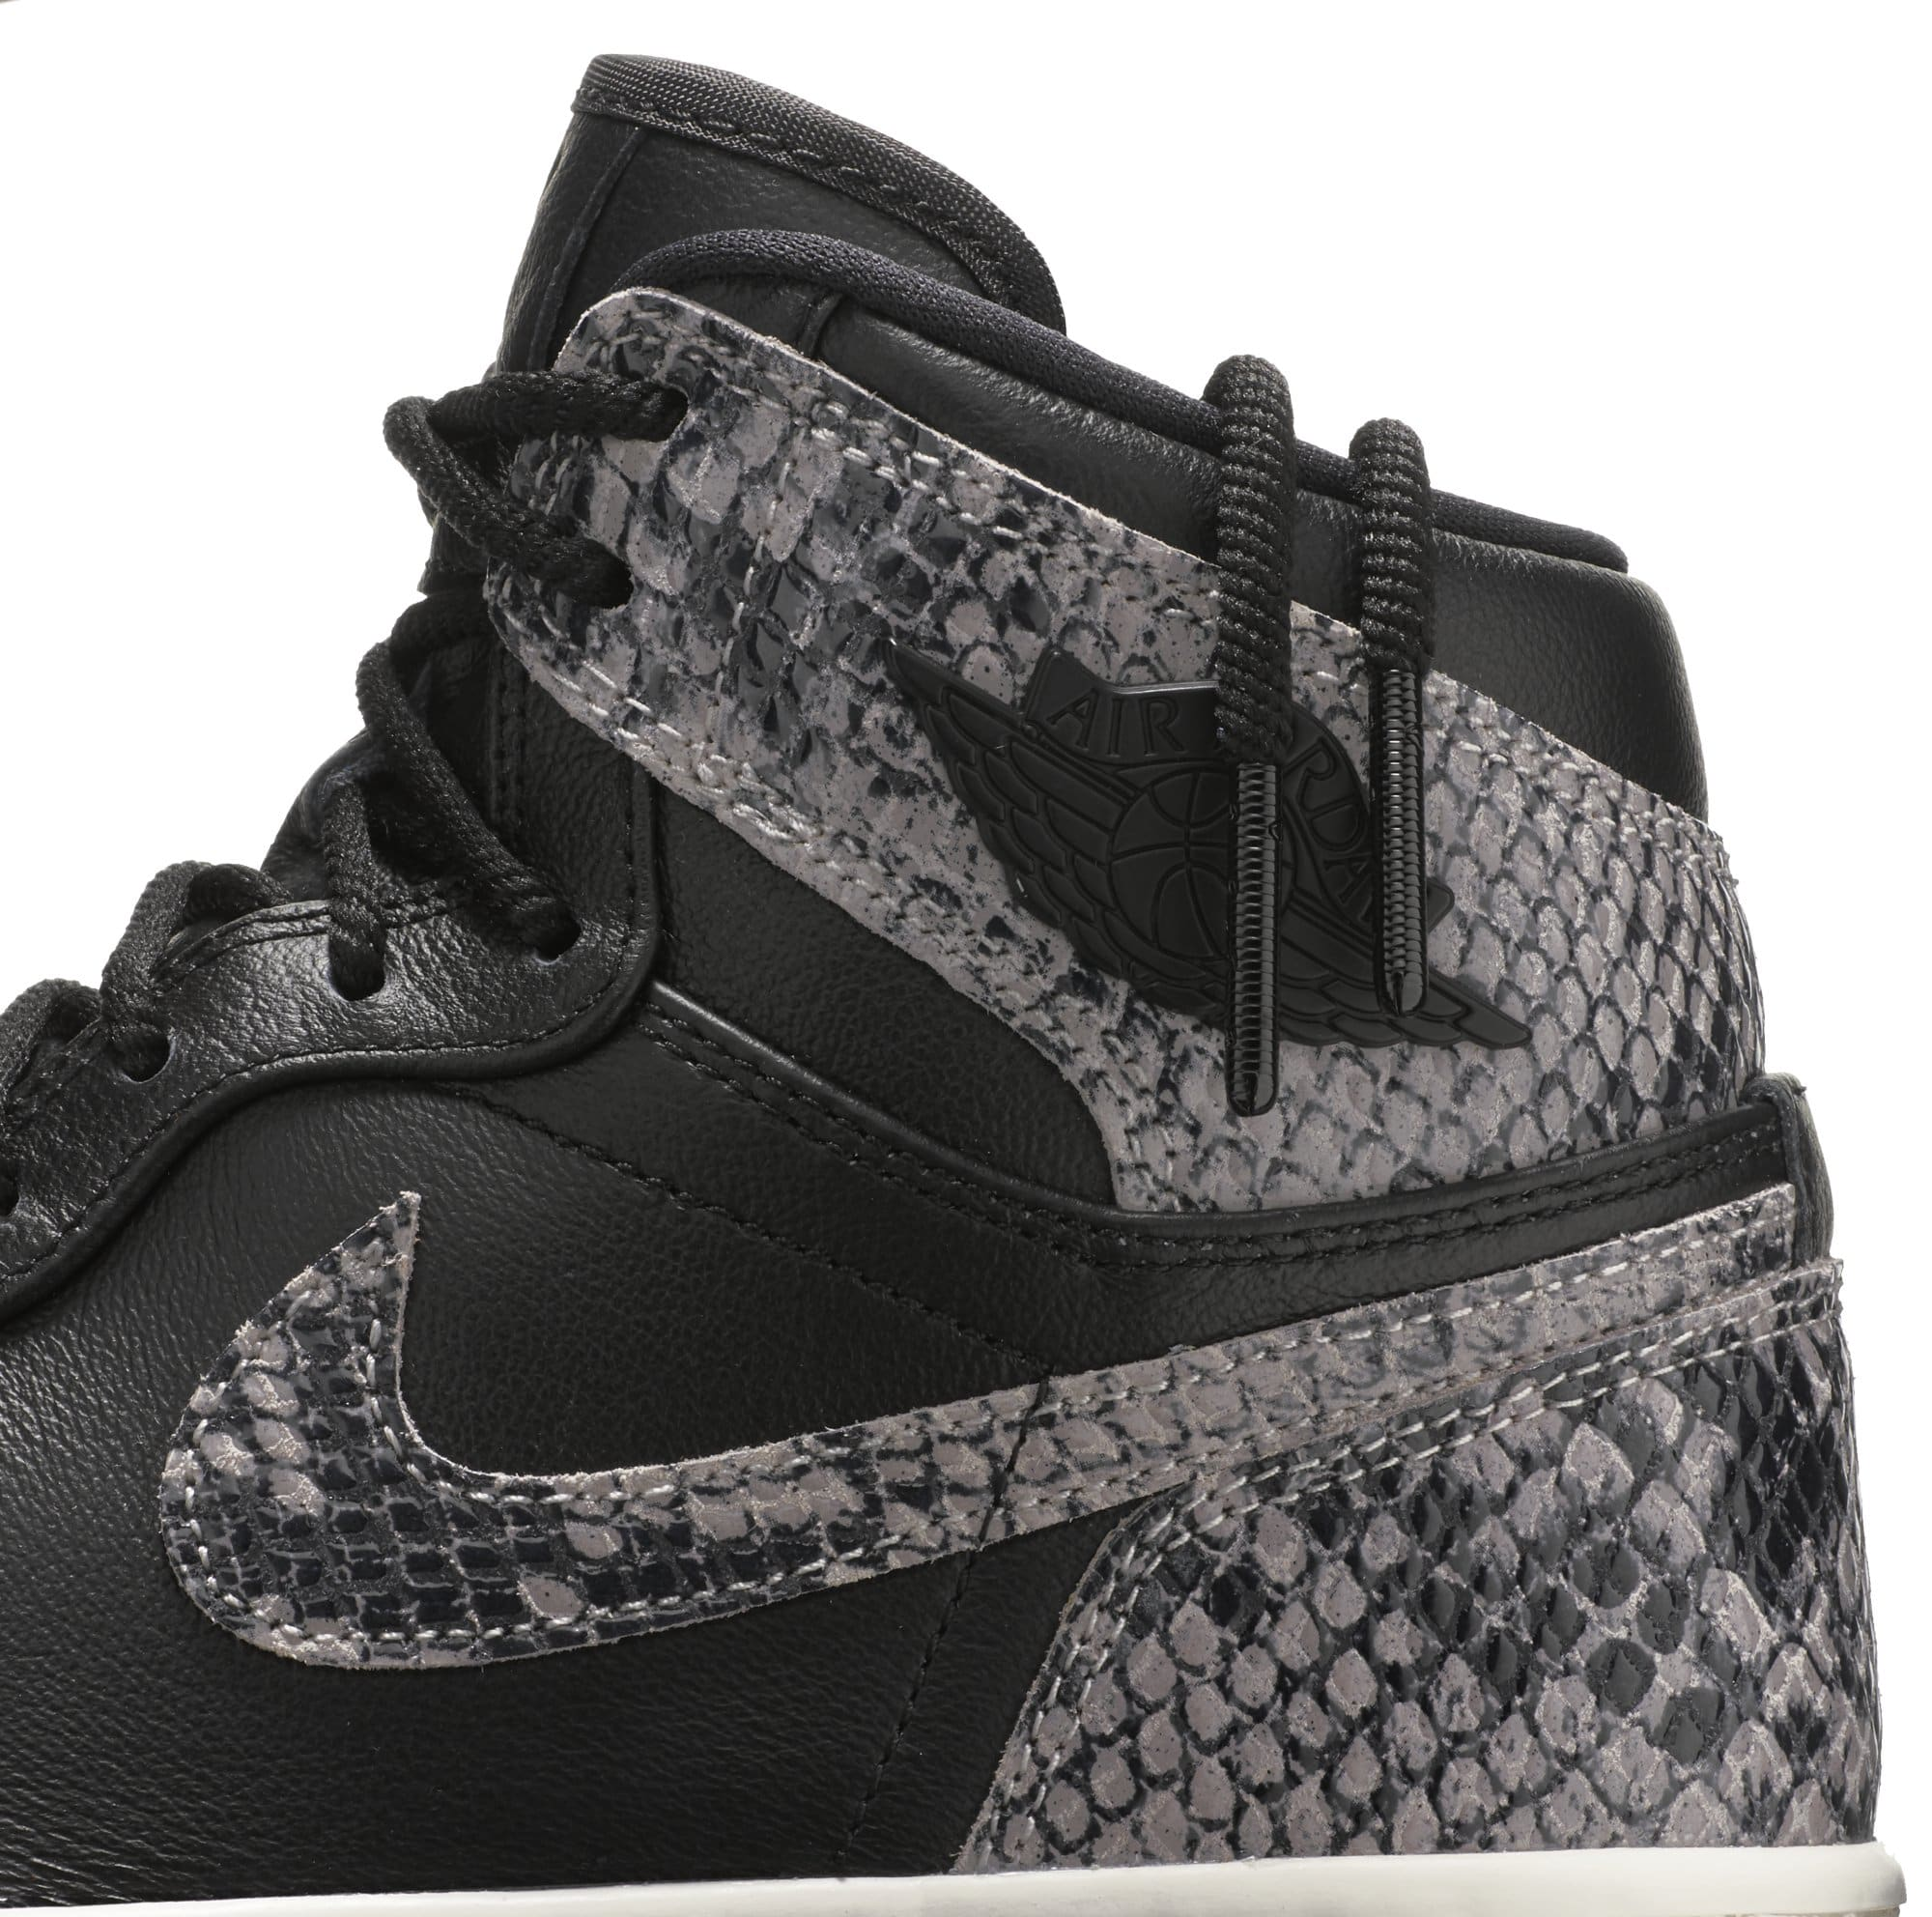 Air Jordan 1 Retro High Premium Women's Snake 'Black/Phantom' AH7389-014 (Detail)